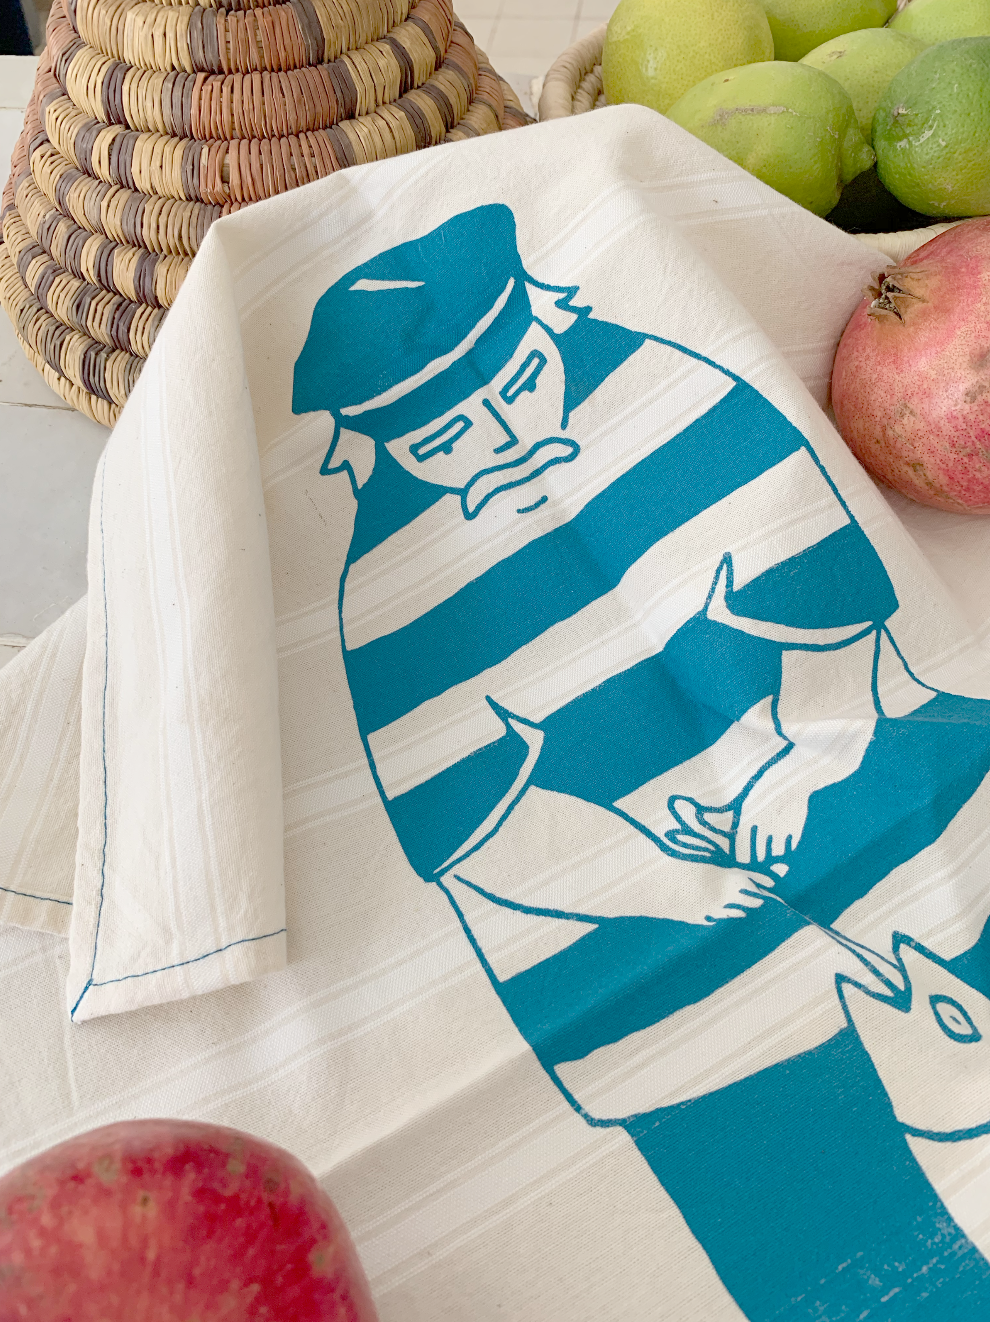 Mr Labas kitchen towel